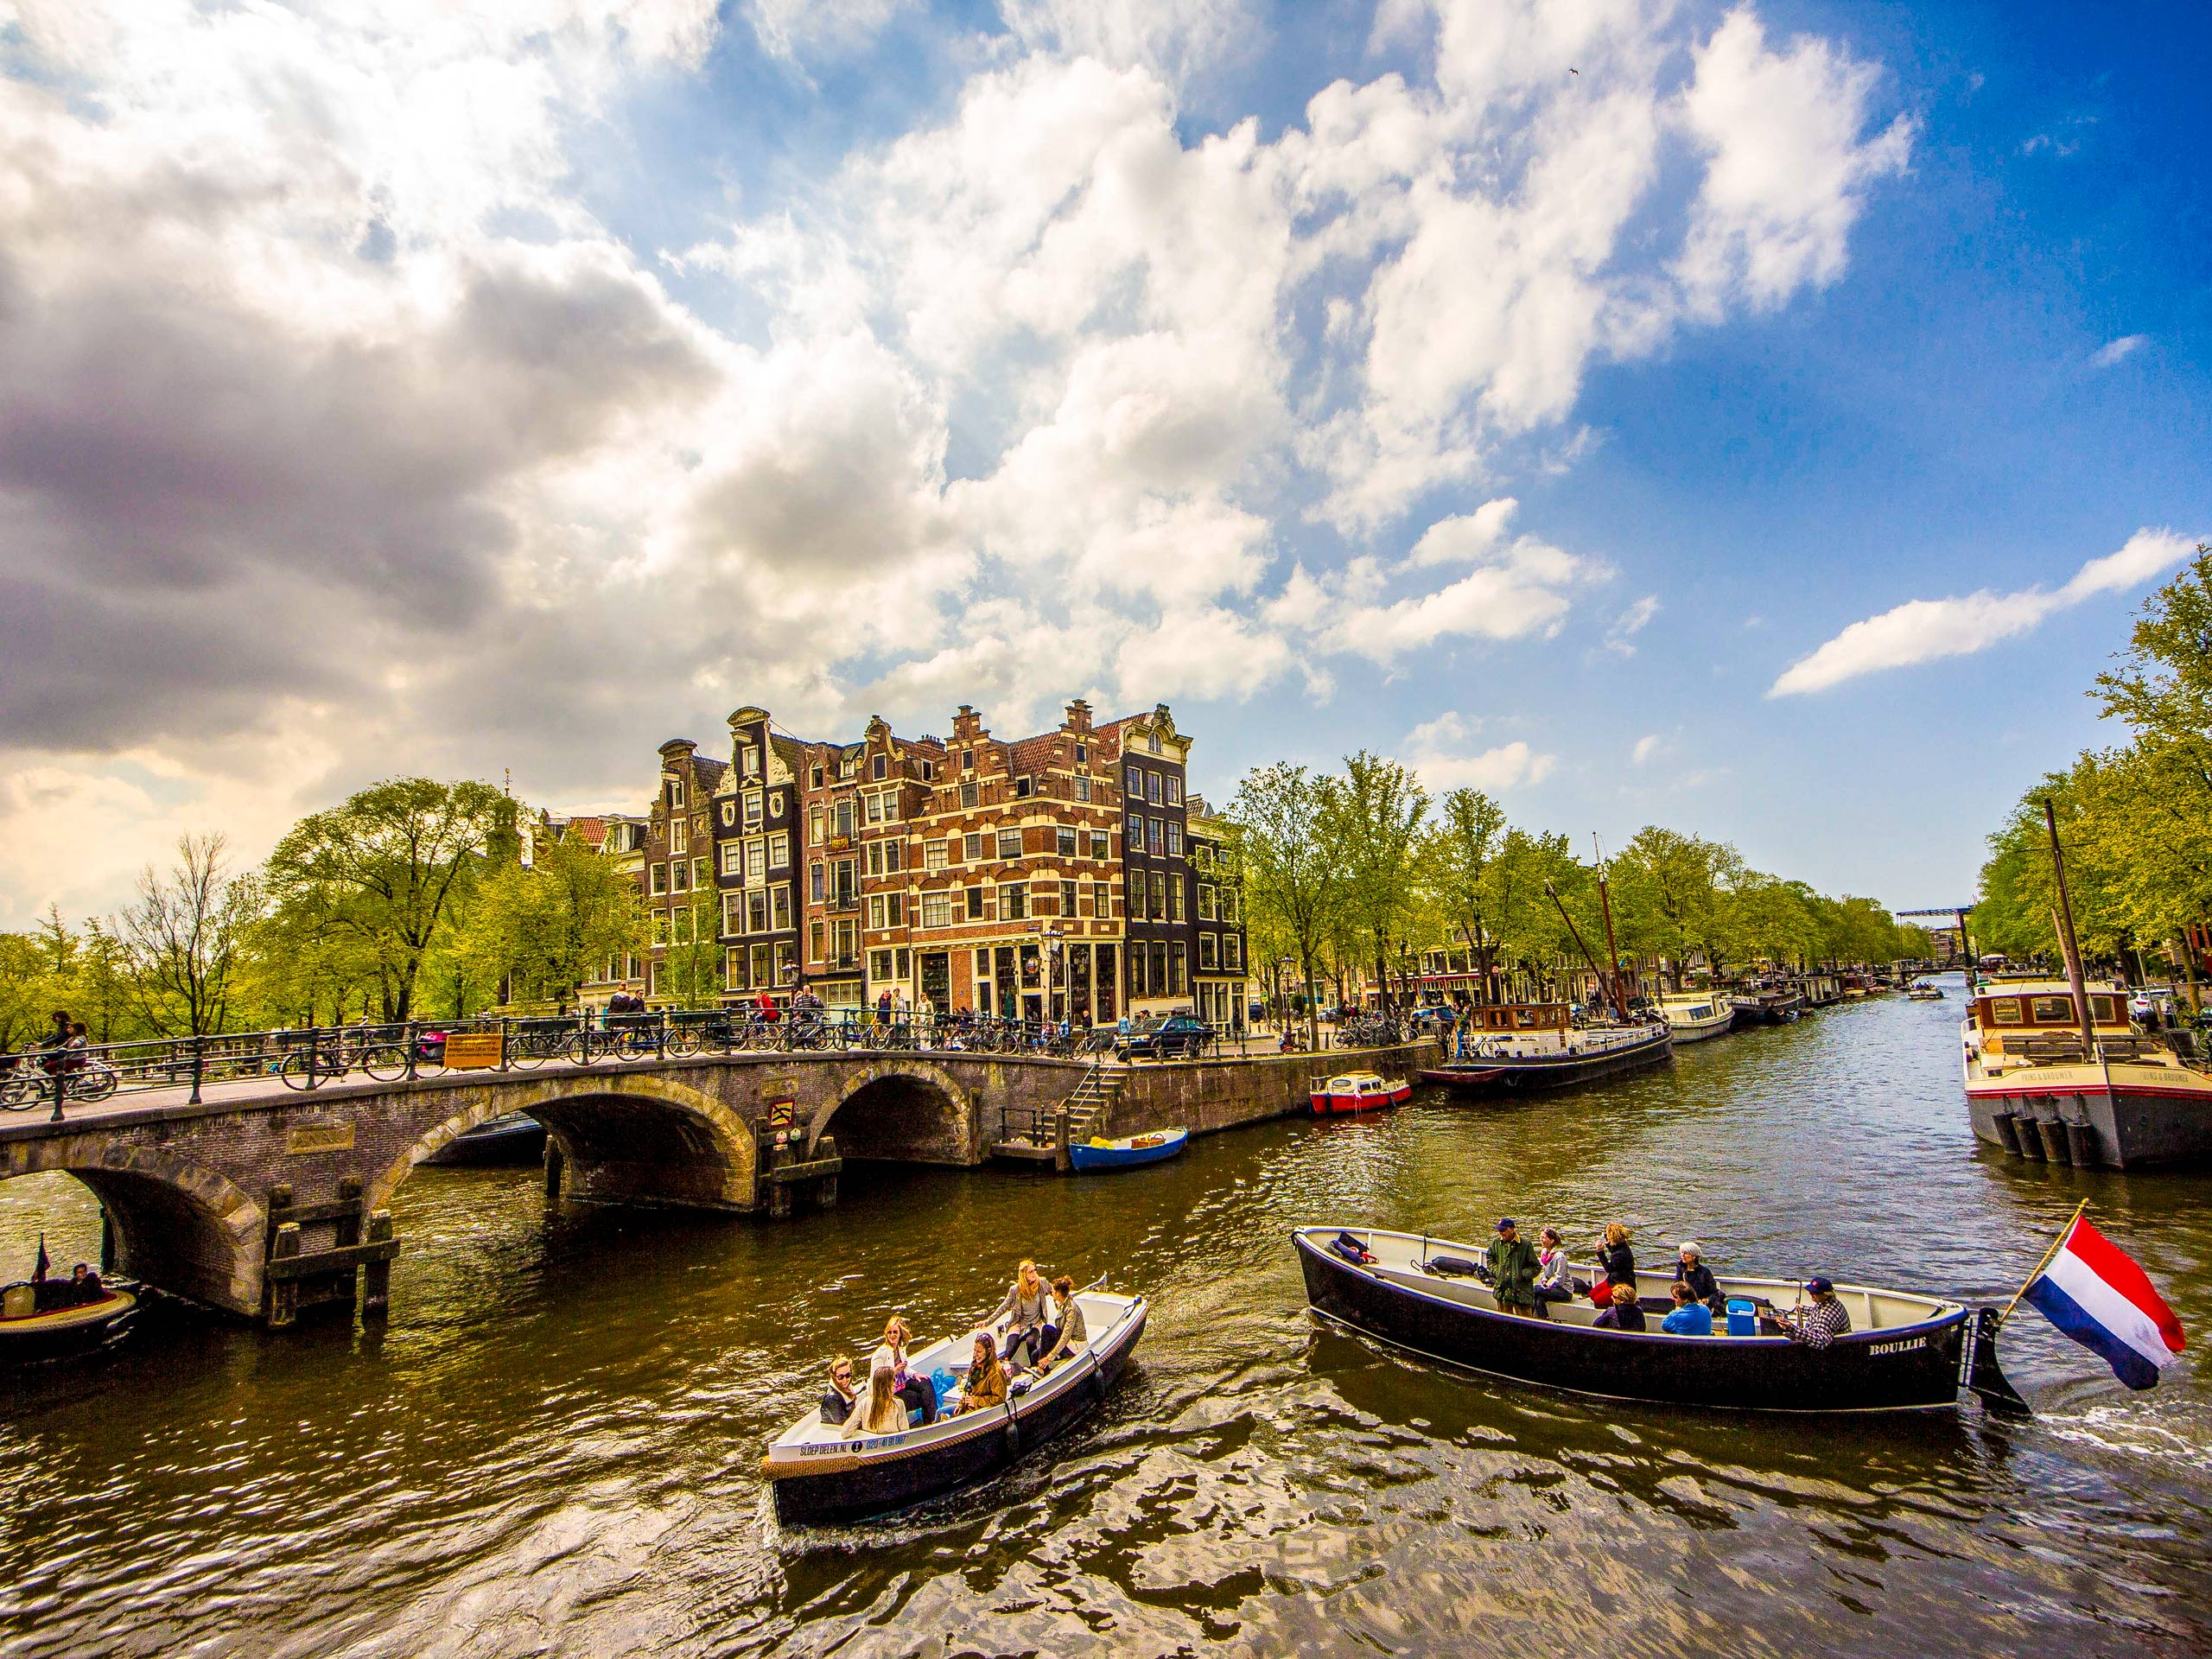 Amsterdam boats in the canal